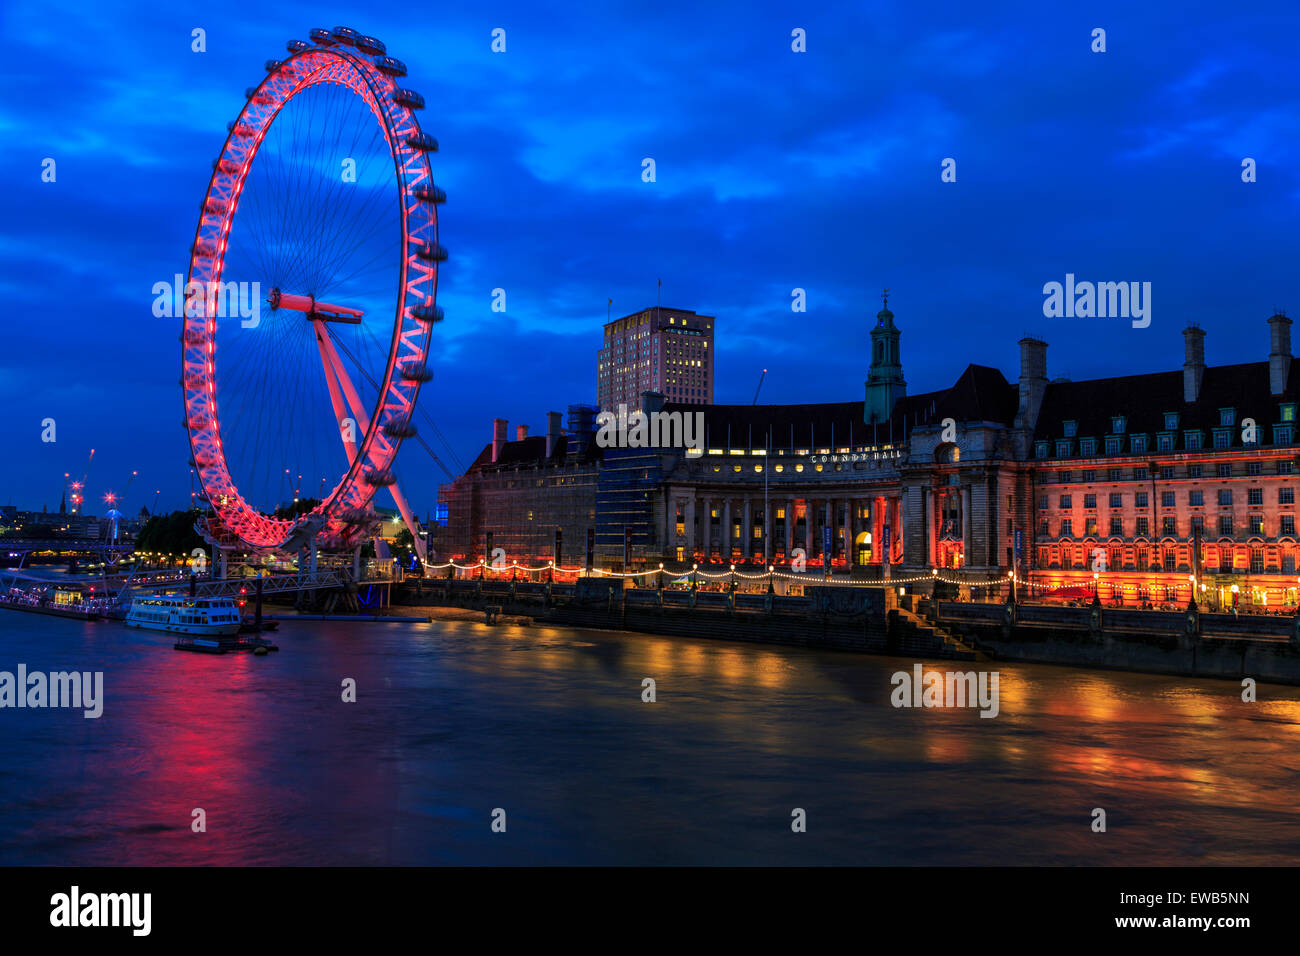 Landscapes along the south bank - Dusk Landscape Image Of The London Eye And County Hall On The South Bank Of The River Thames